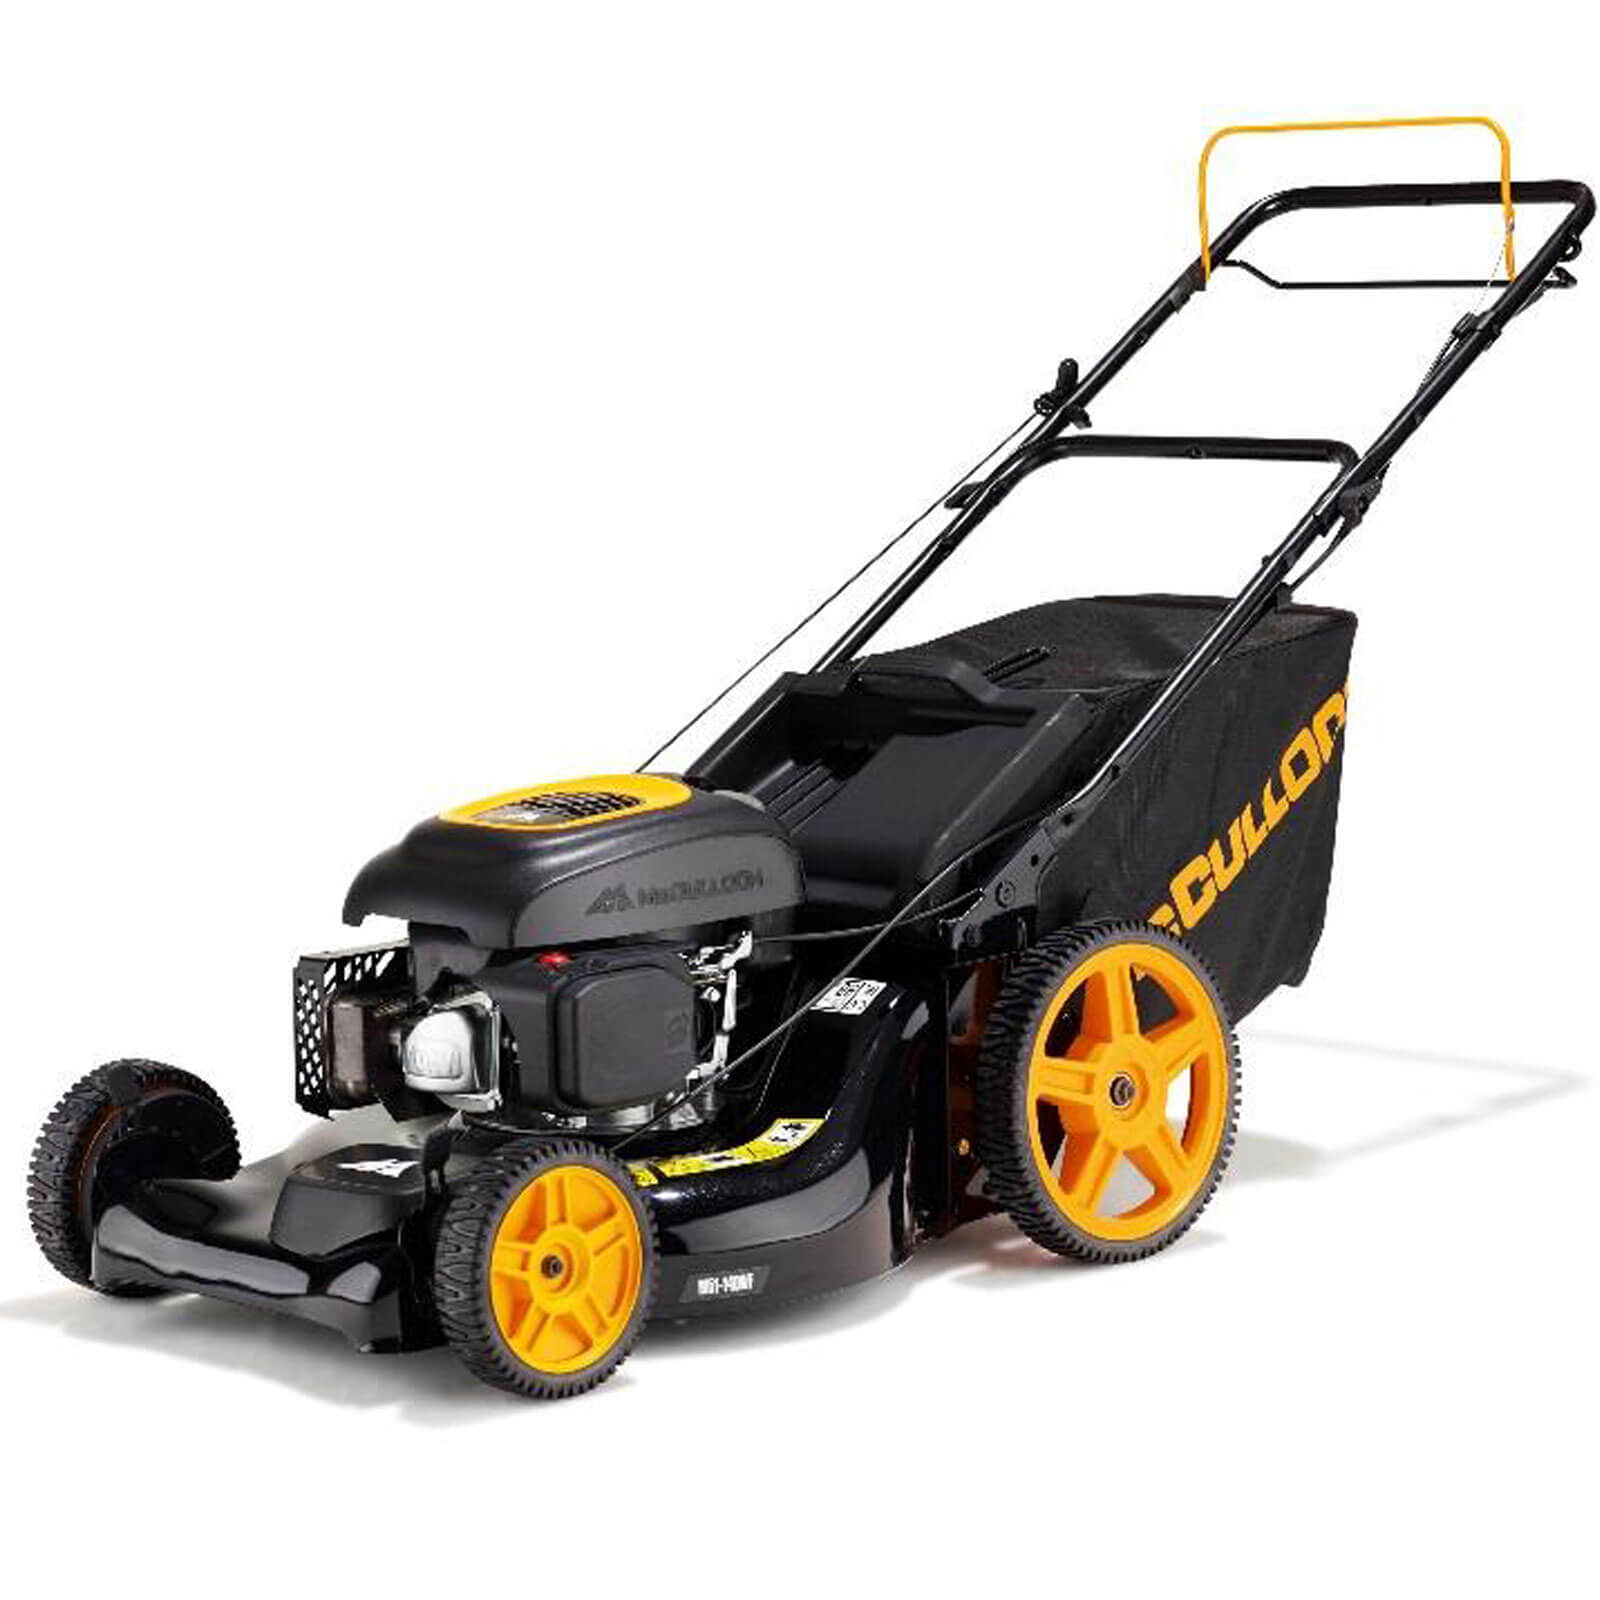 Image of McCulloch M51-140WF Self Propelled Petrol Rotary Lawnmower 510mm